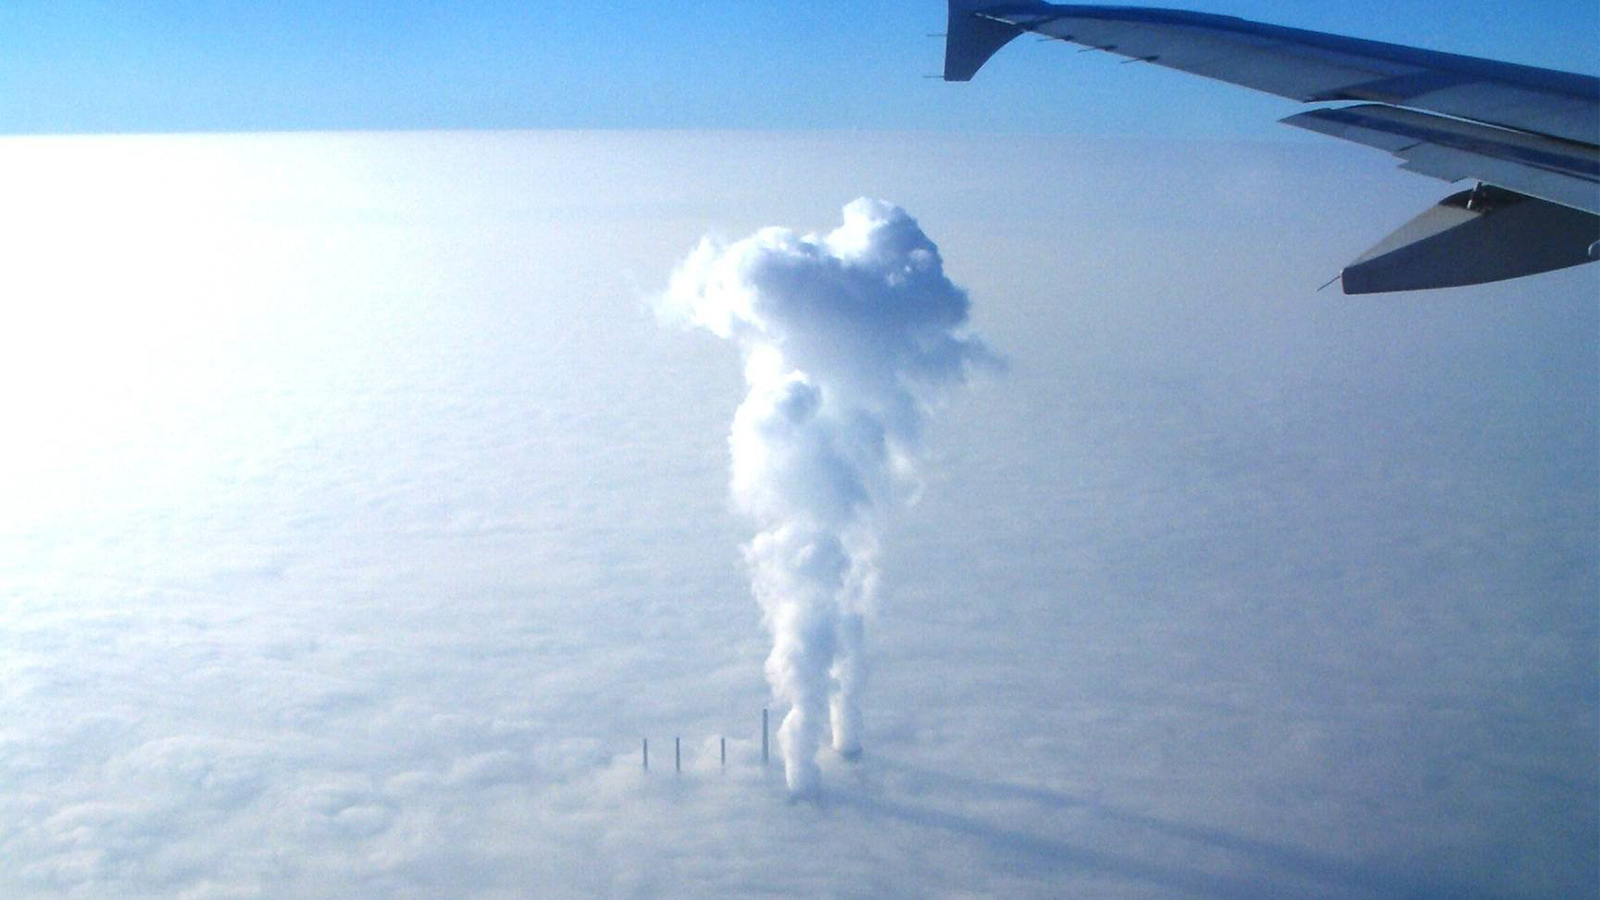 So This Is How They Make Clouds